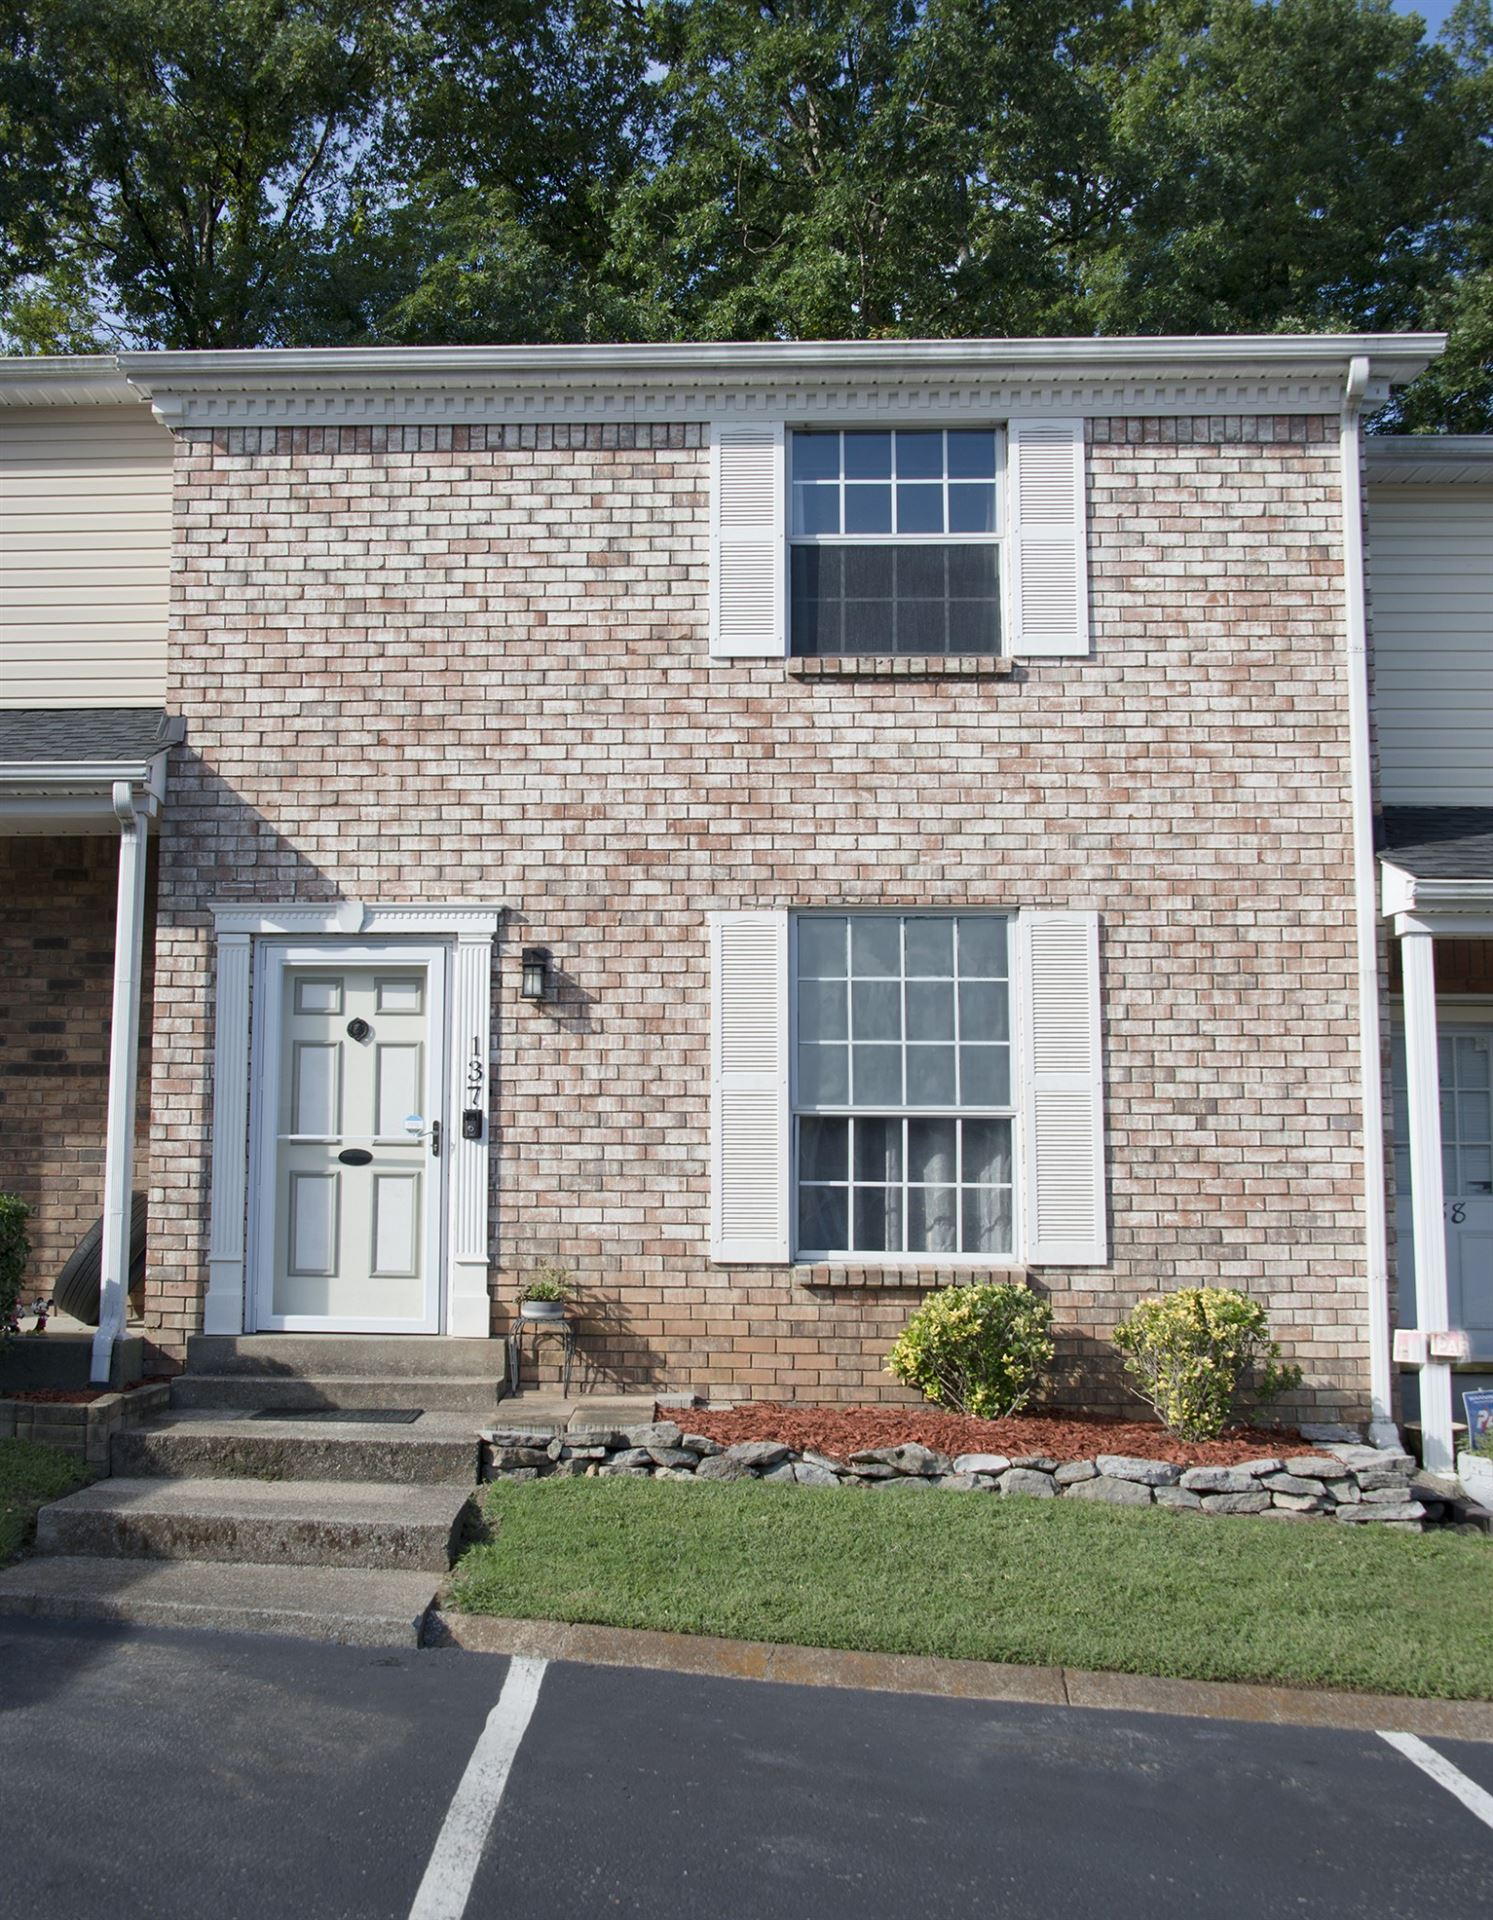 137 Five Oaks Dr, Nashville, TN 37217 - MLS#: 2190830